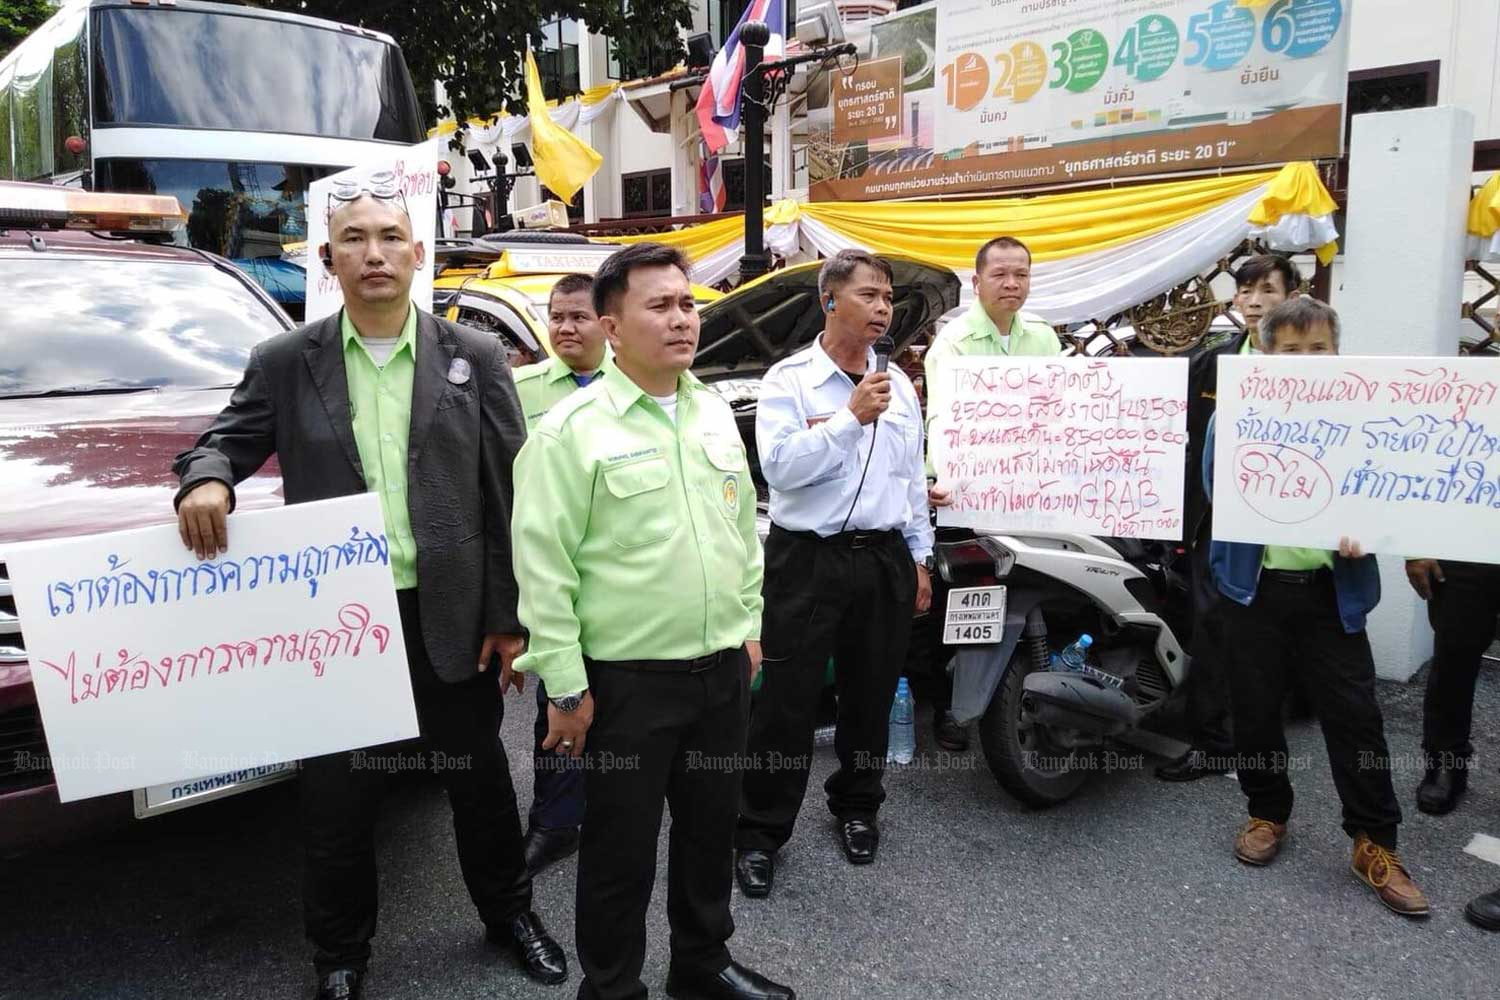 Worapol Kaemkhunthod, second left, leads a taxi drivers' rally at the Transport Ministry in Bangkok on Tuesday. (Photo by Thodsapol Hongthong)